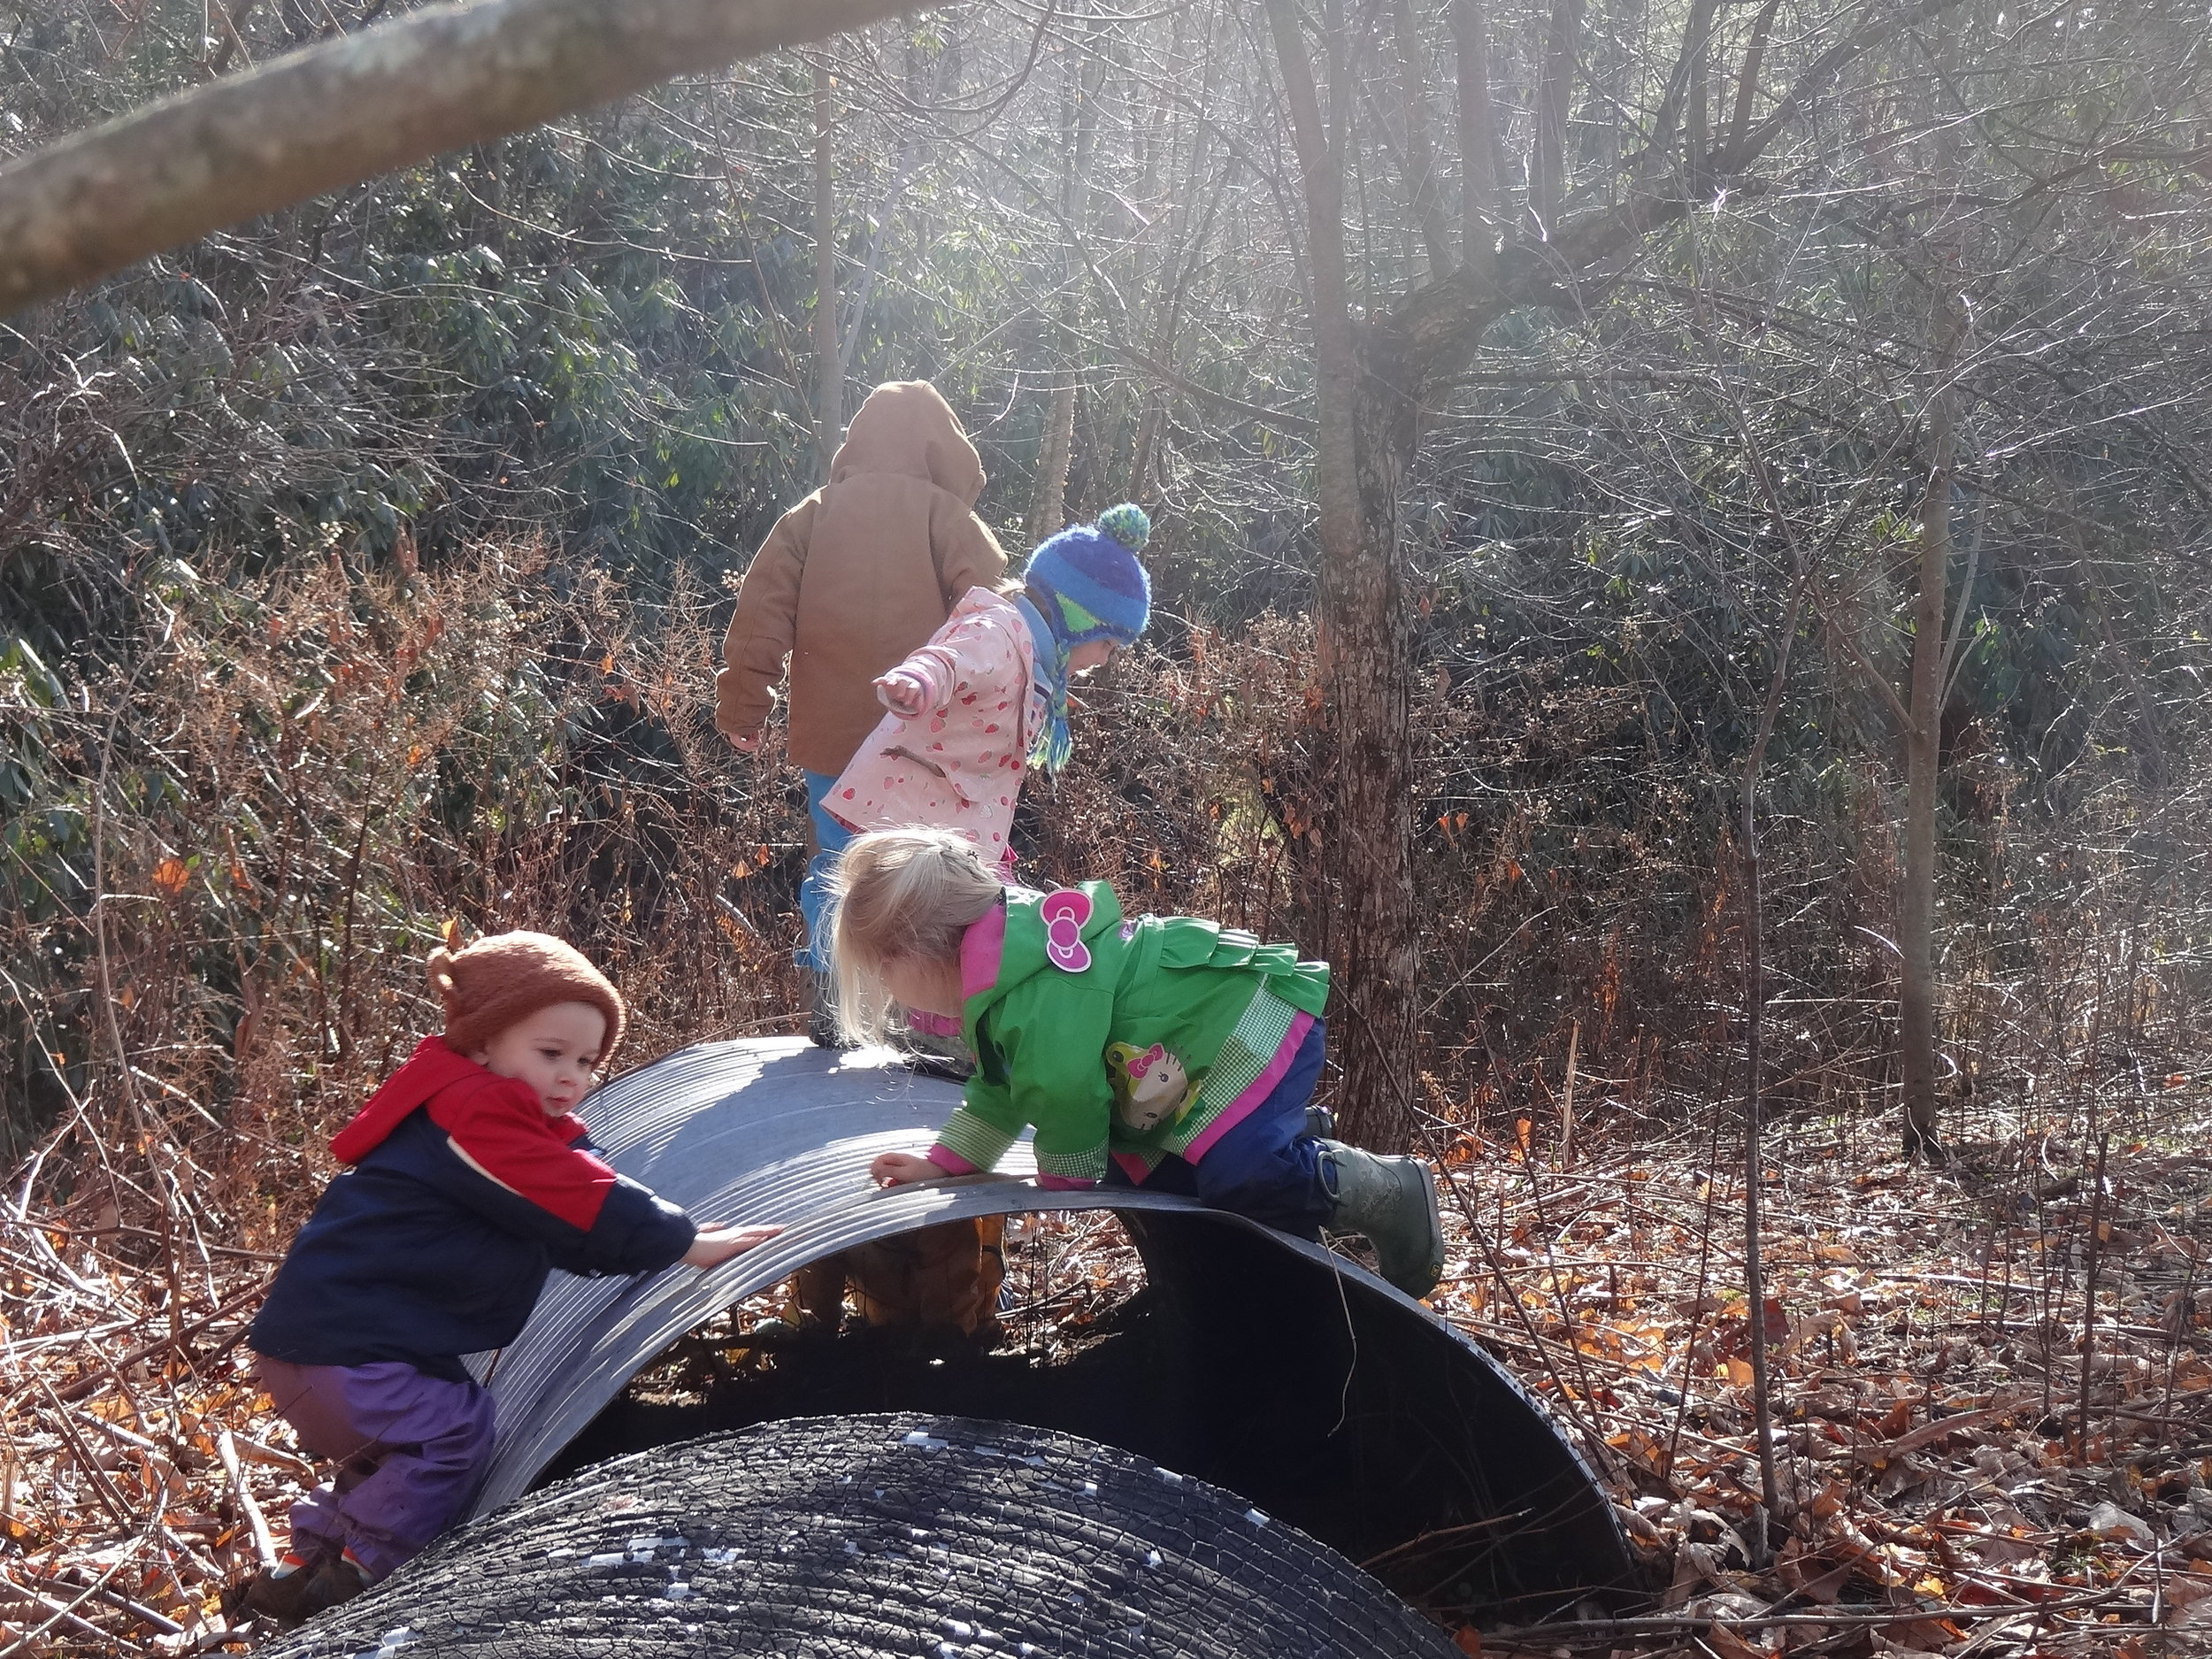 Children discovered yet another play area.  A tunnel and a climbing structure only available in winter.